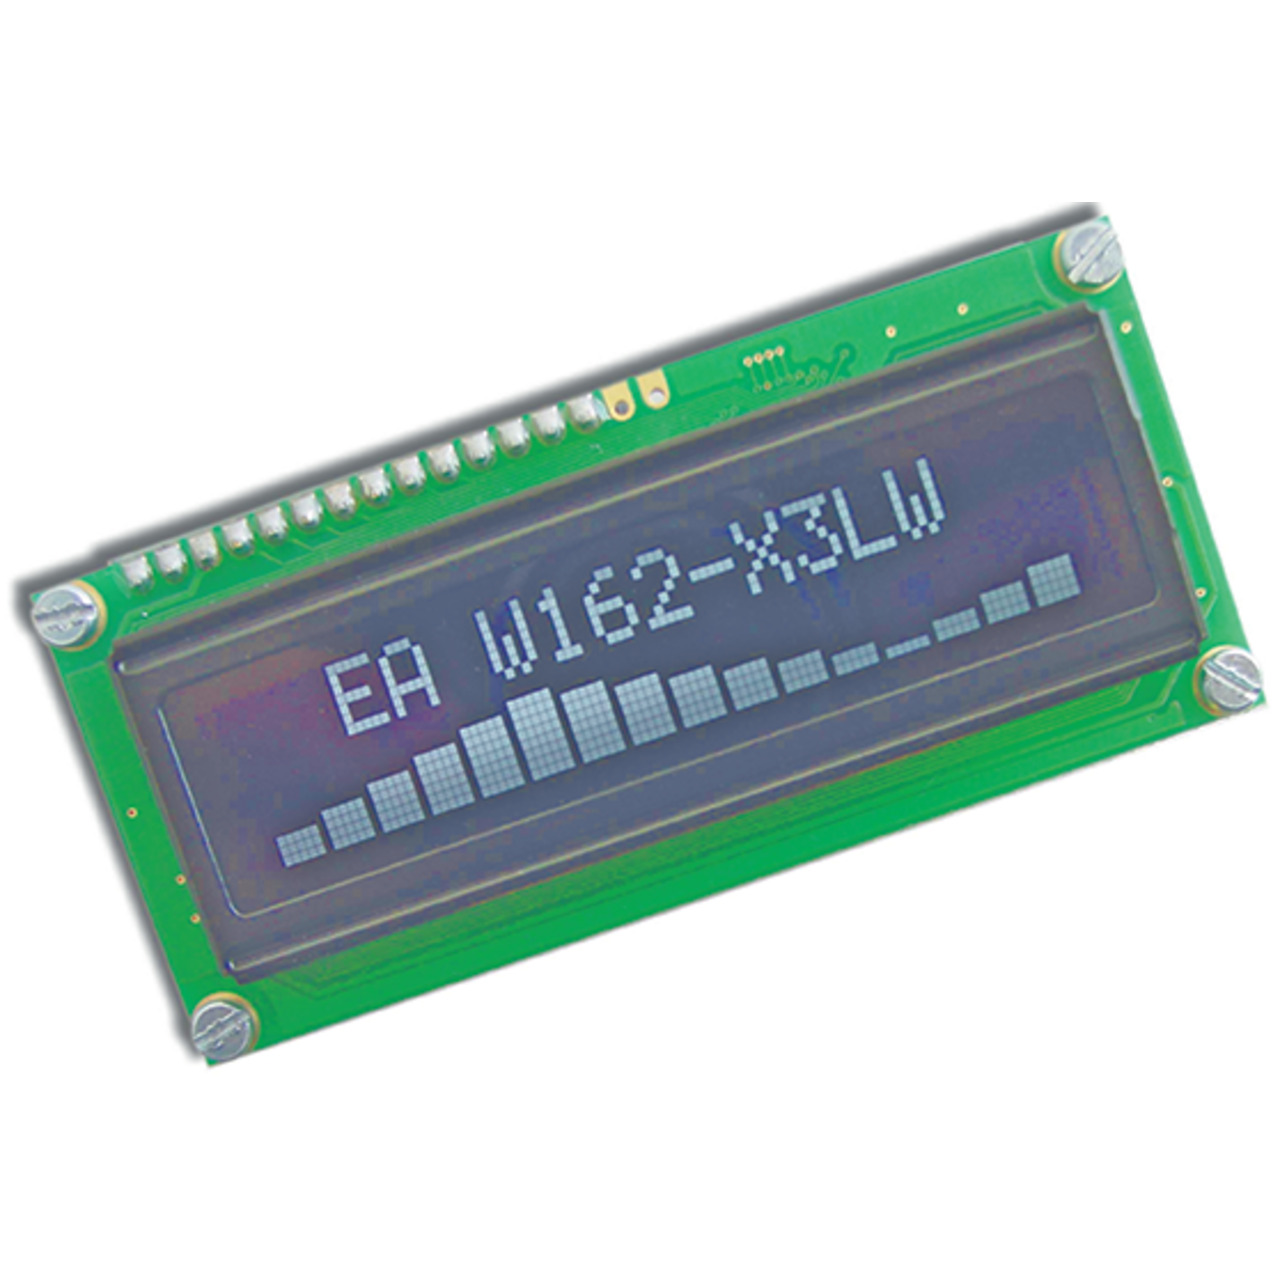 Electronic Assembly OLED-Display EAW162-X3LW 2x16- character 5-5 mm- weiss